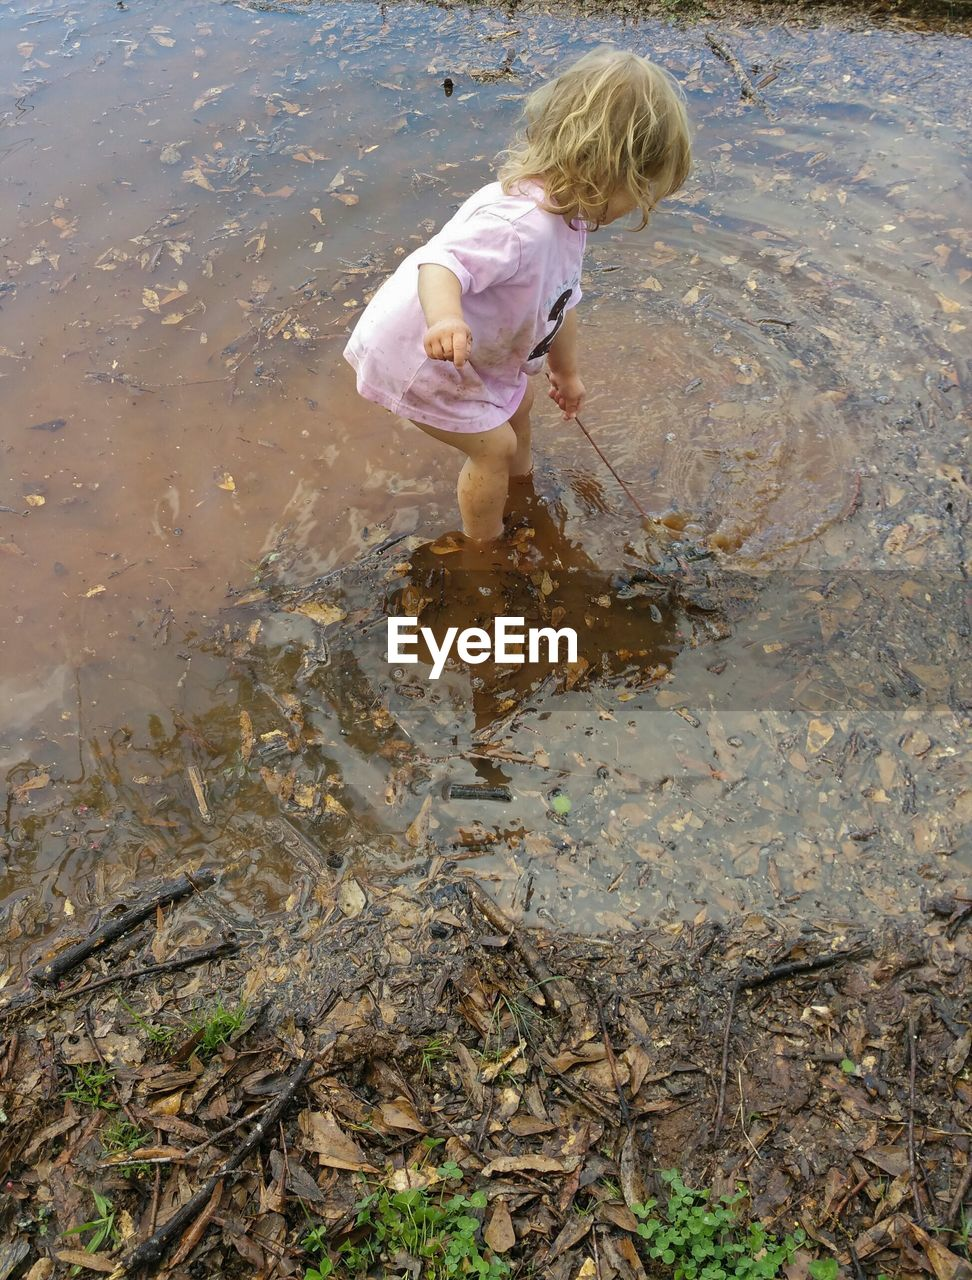 water, one person, full length, childhood, real people, standing, outdoors, ankle deep in water, day, boys, nature, blond hair, people